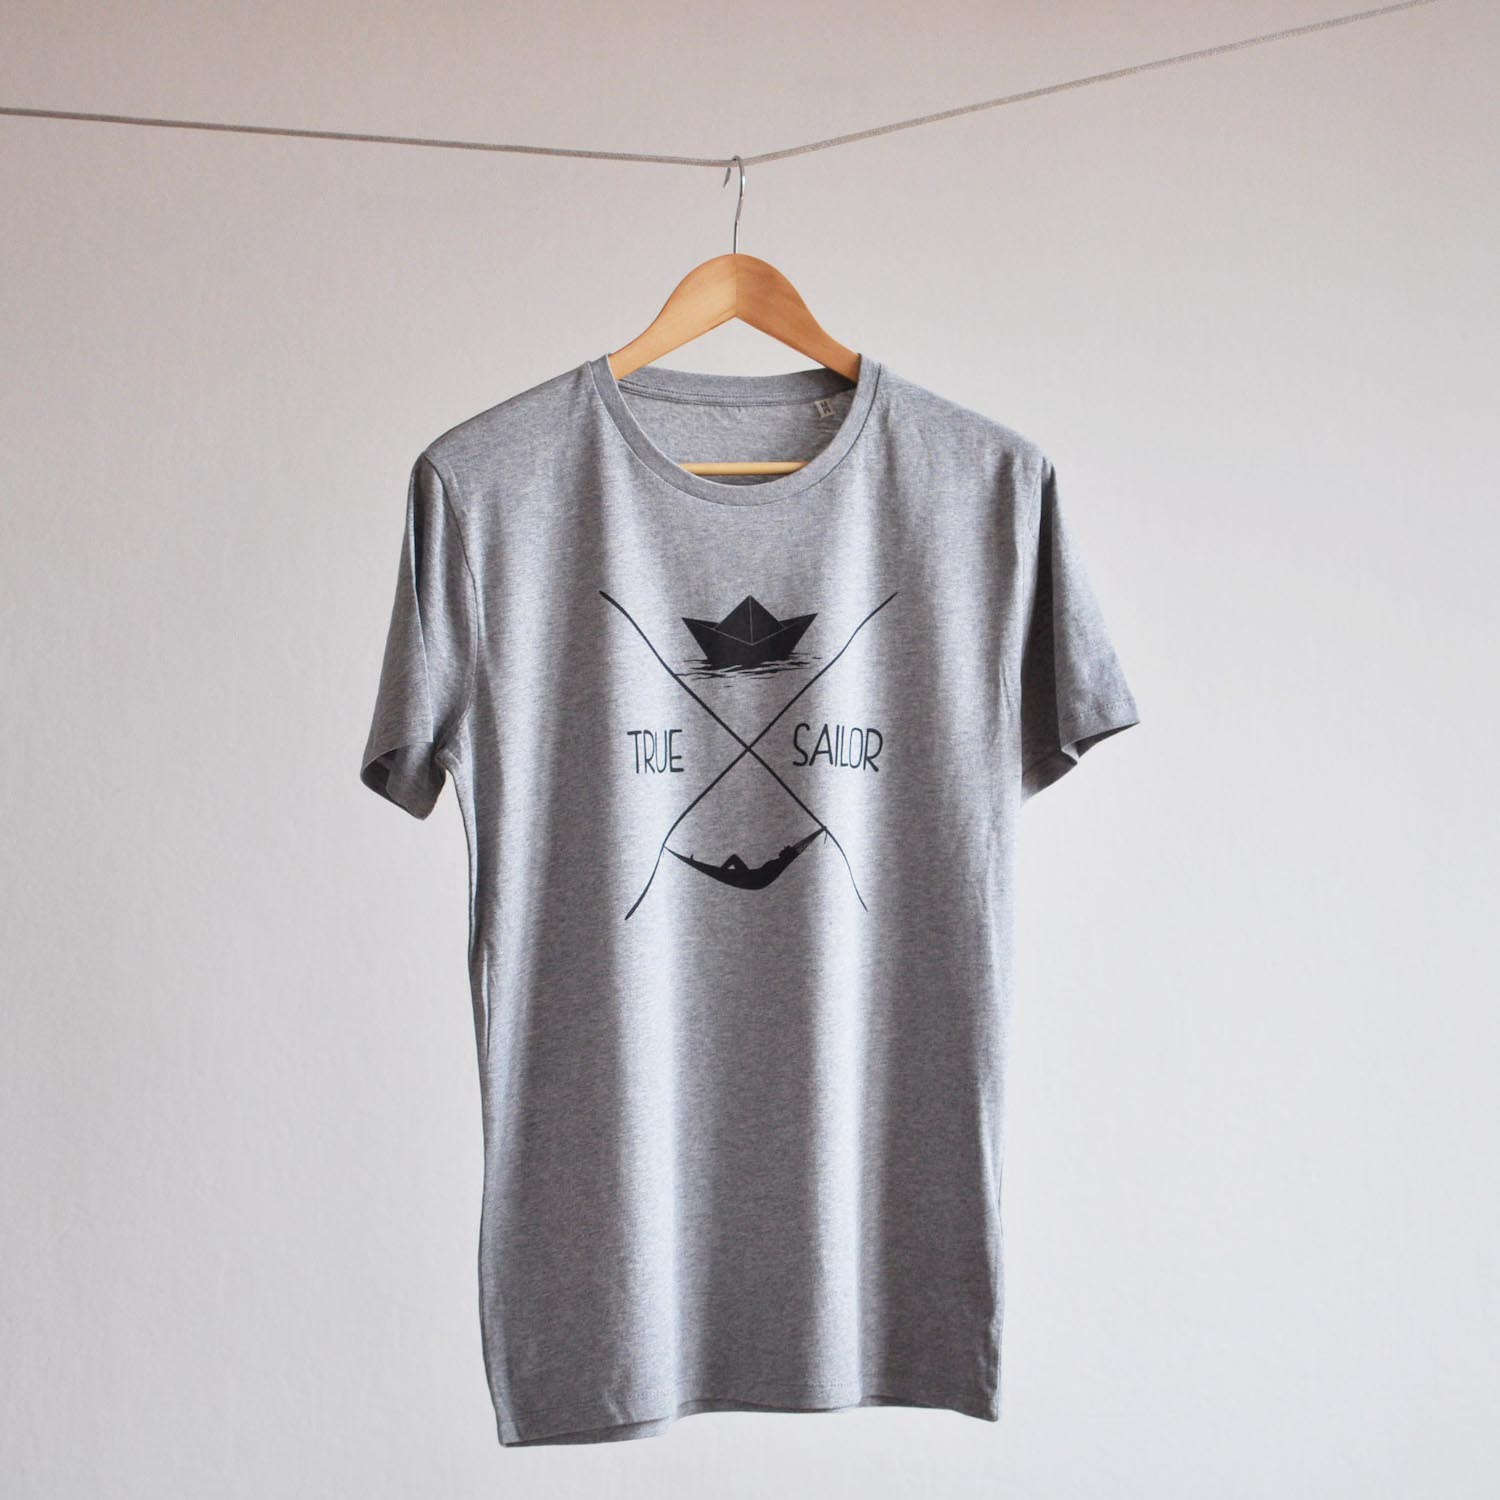 t-shirt true sailor gris chine